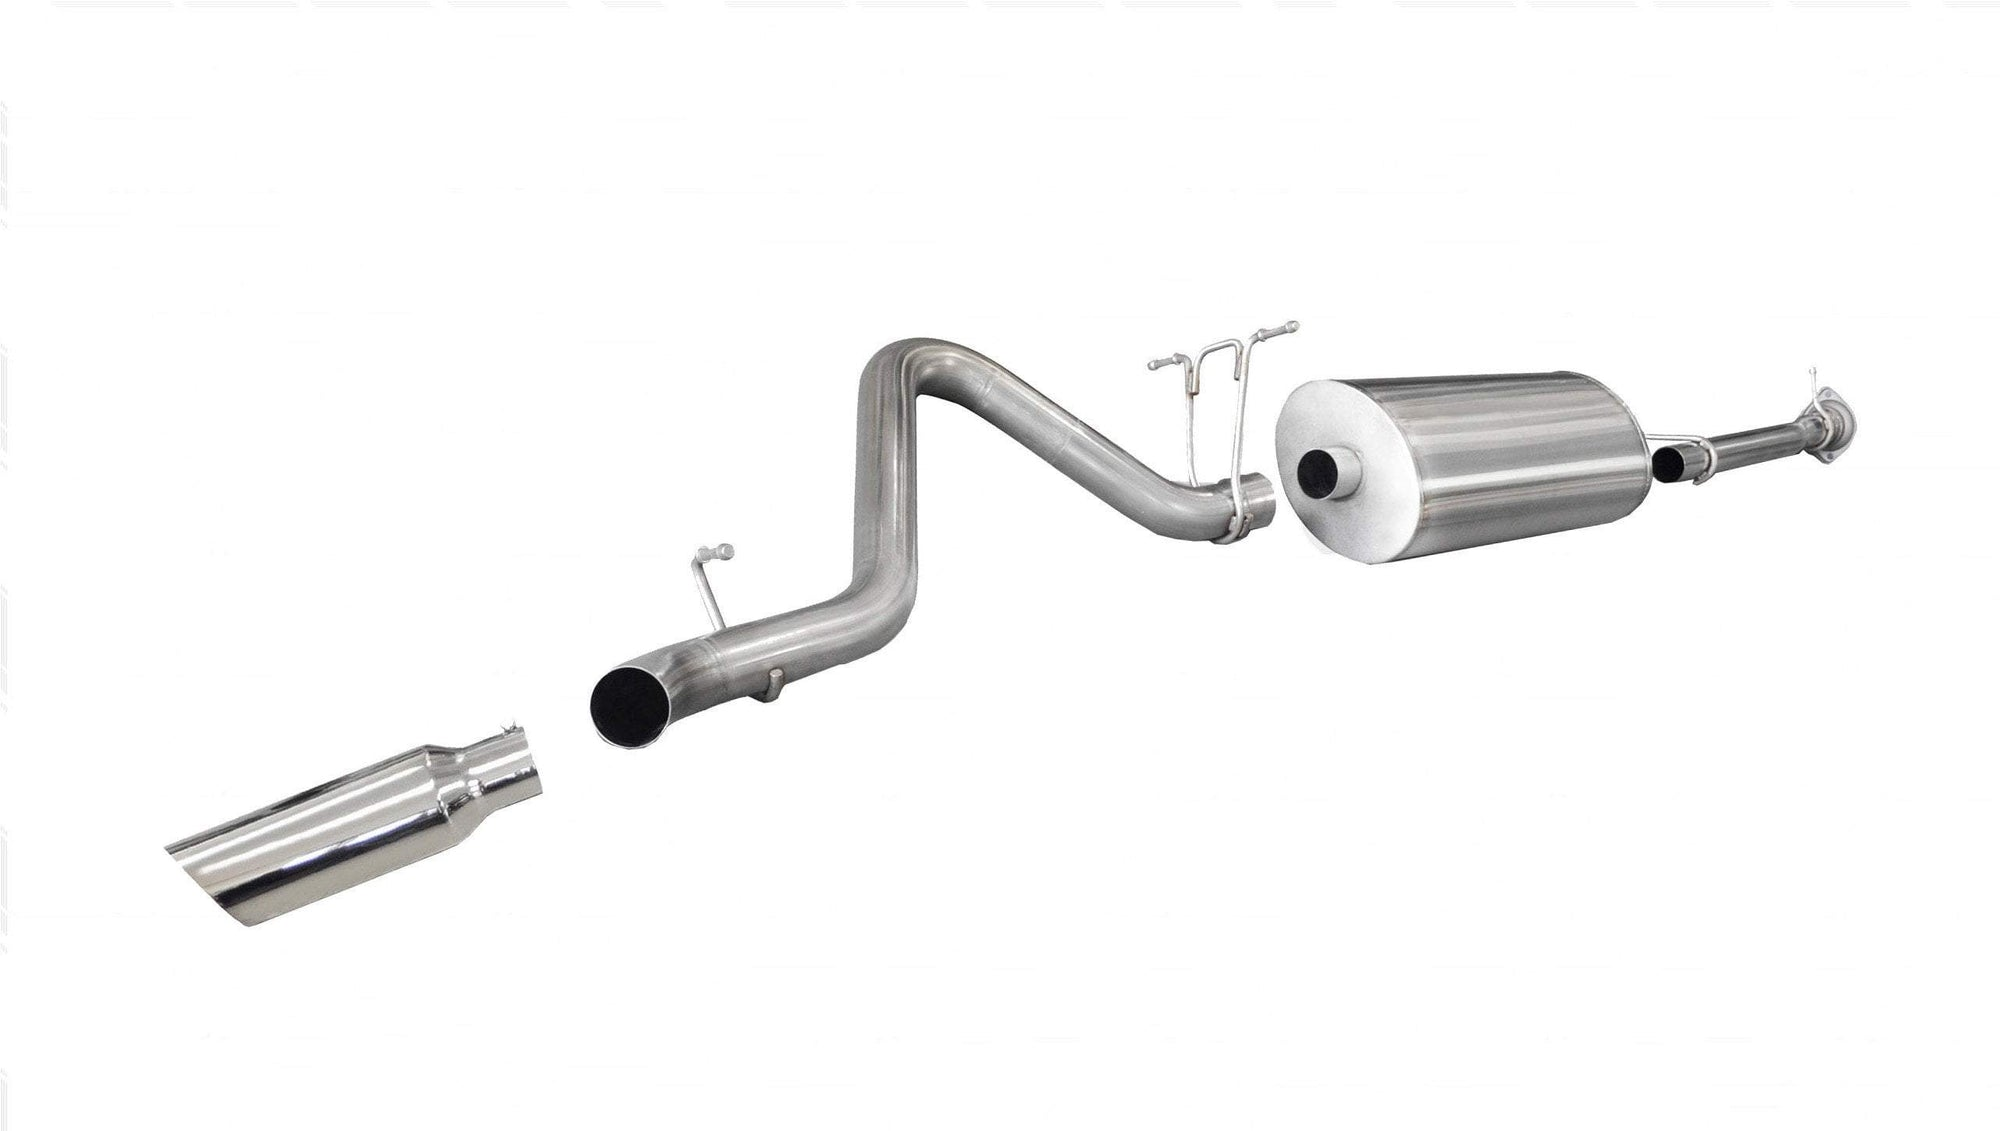 "dB Cat-Back Exhaust Polished / Sport / Single Side - Single 4in 2011-2014 Chevolet Silverado, GMC Sierra 6.0L V8, 3.0"" Catback Exhaust System with 4.0"" Tip (24796) Sport Sound Level"